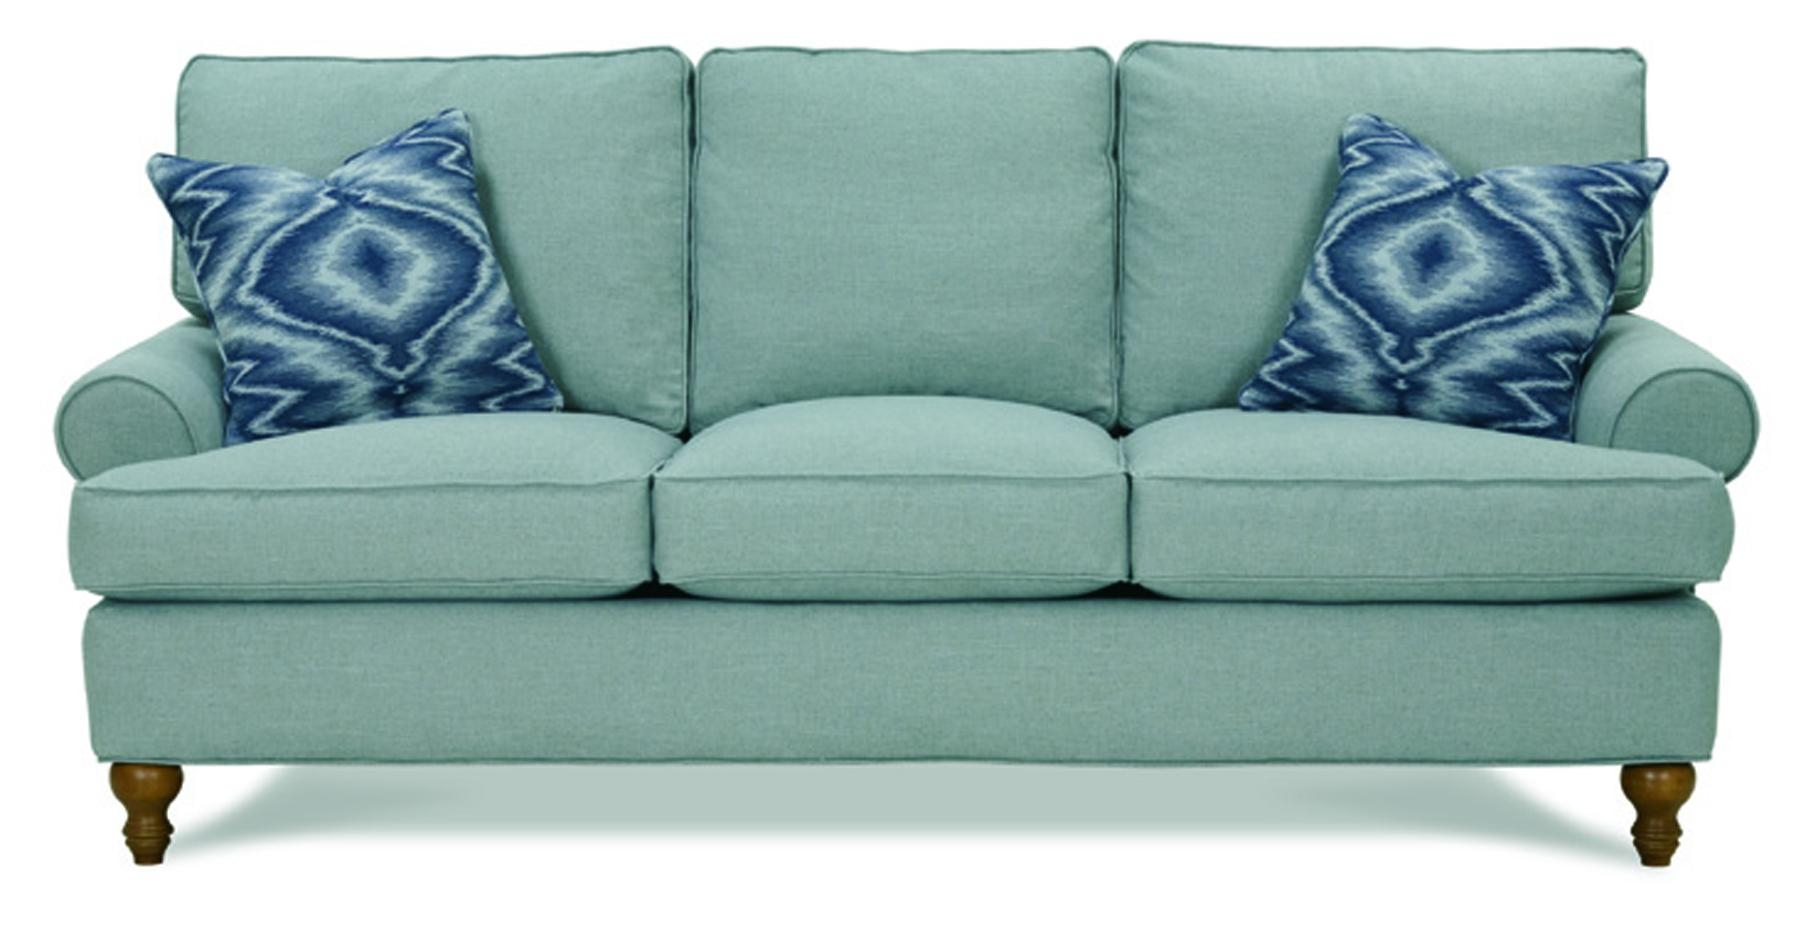 ashford sofa boston interiors chesterfield grey fabric 20 top sofas ideas